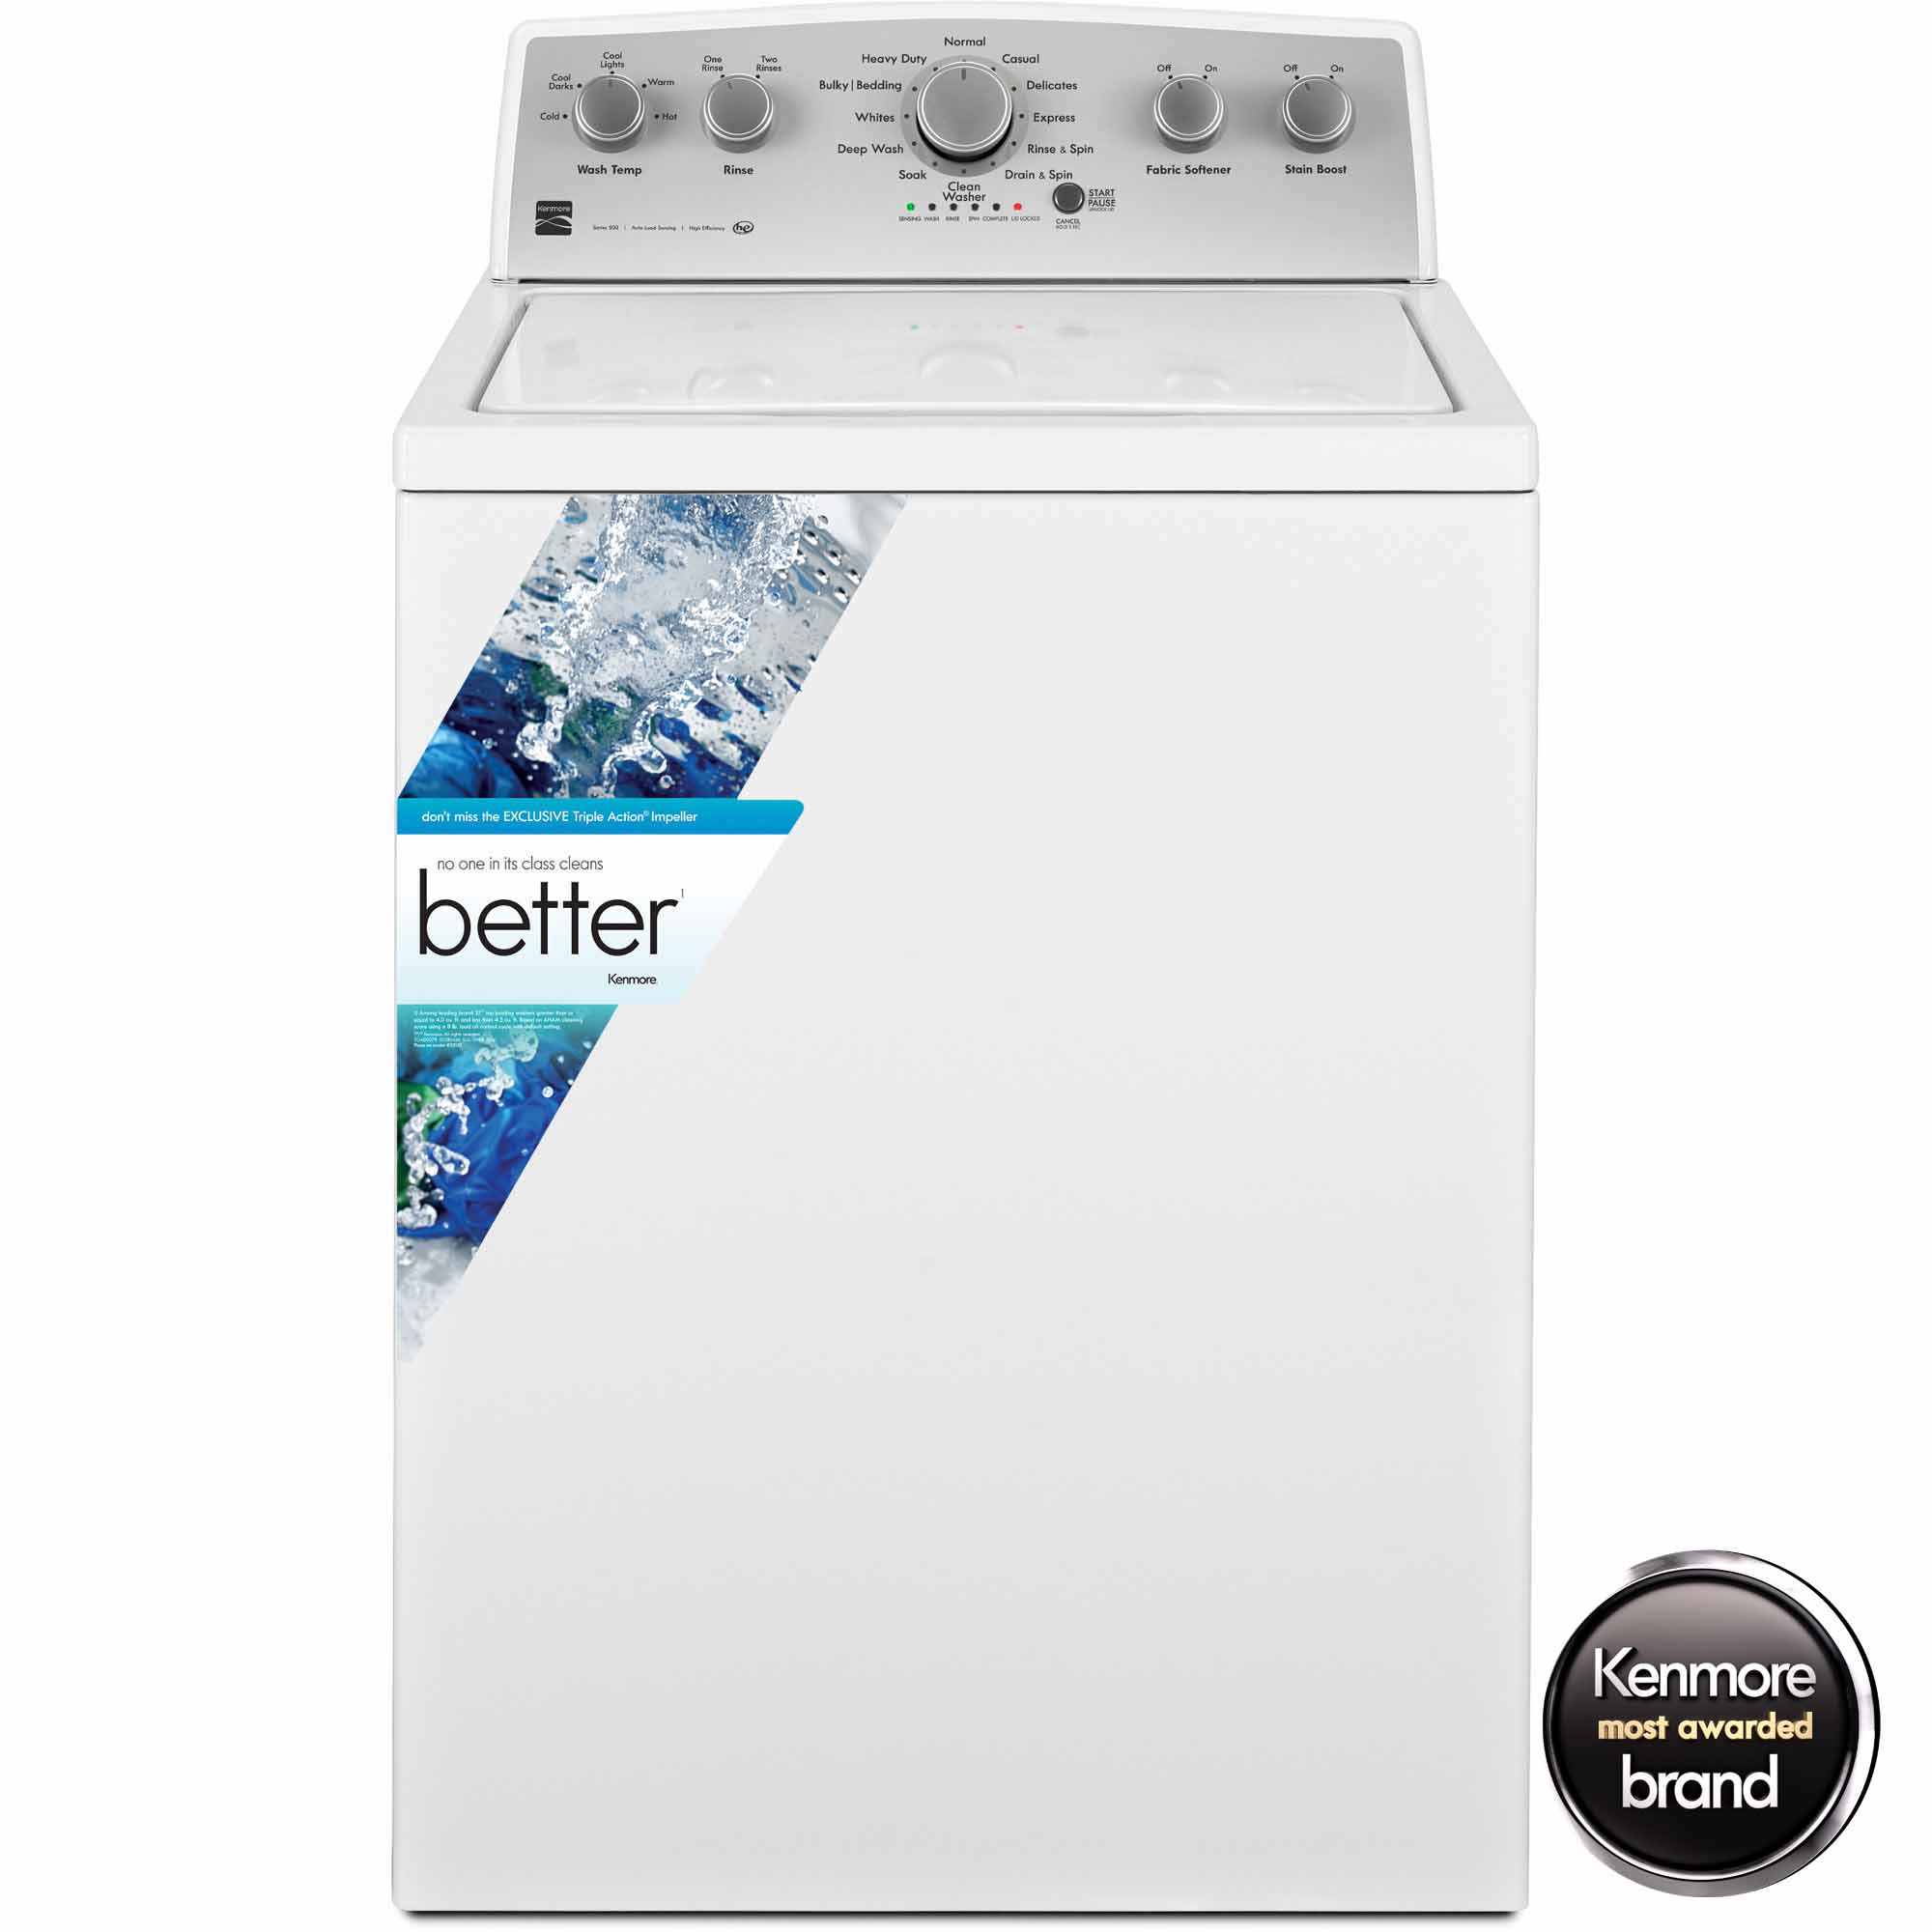 Kenmore 25132 Top Load 4.3 Cu. Ft Washer Review